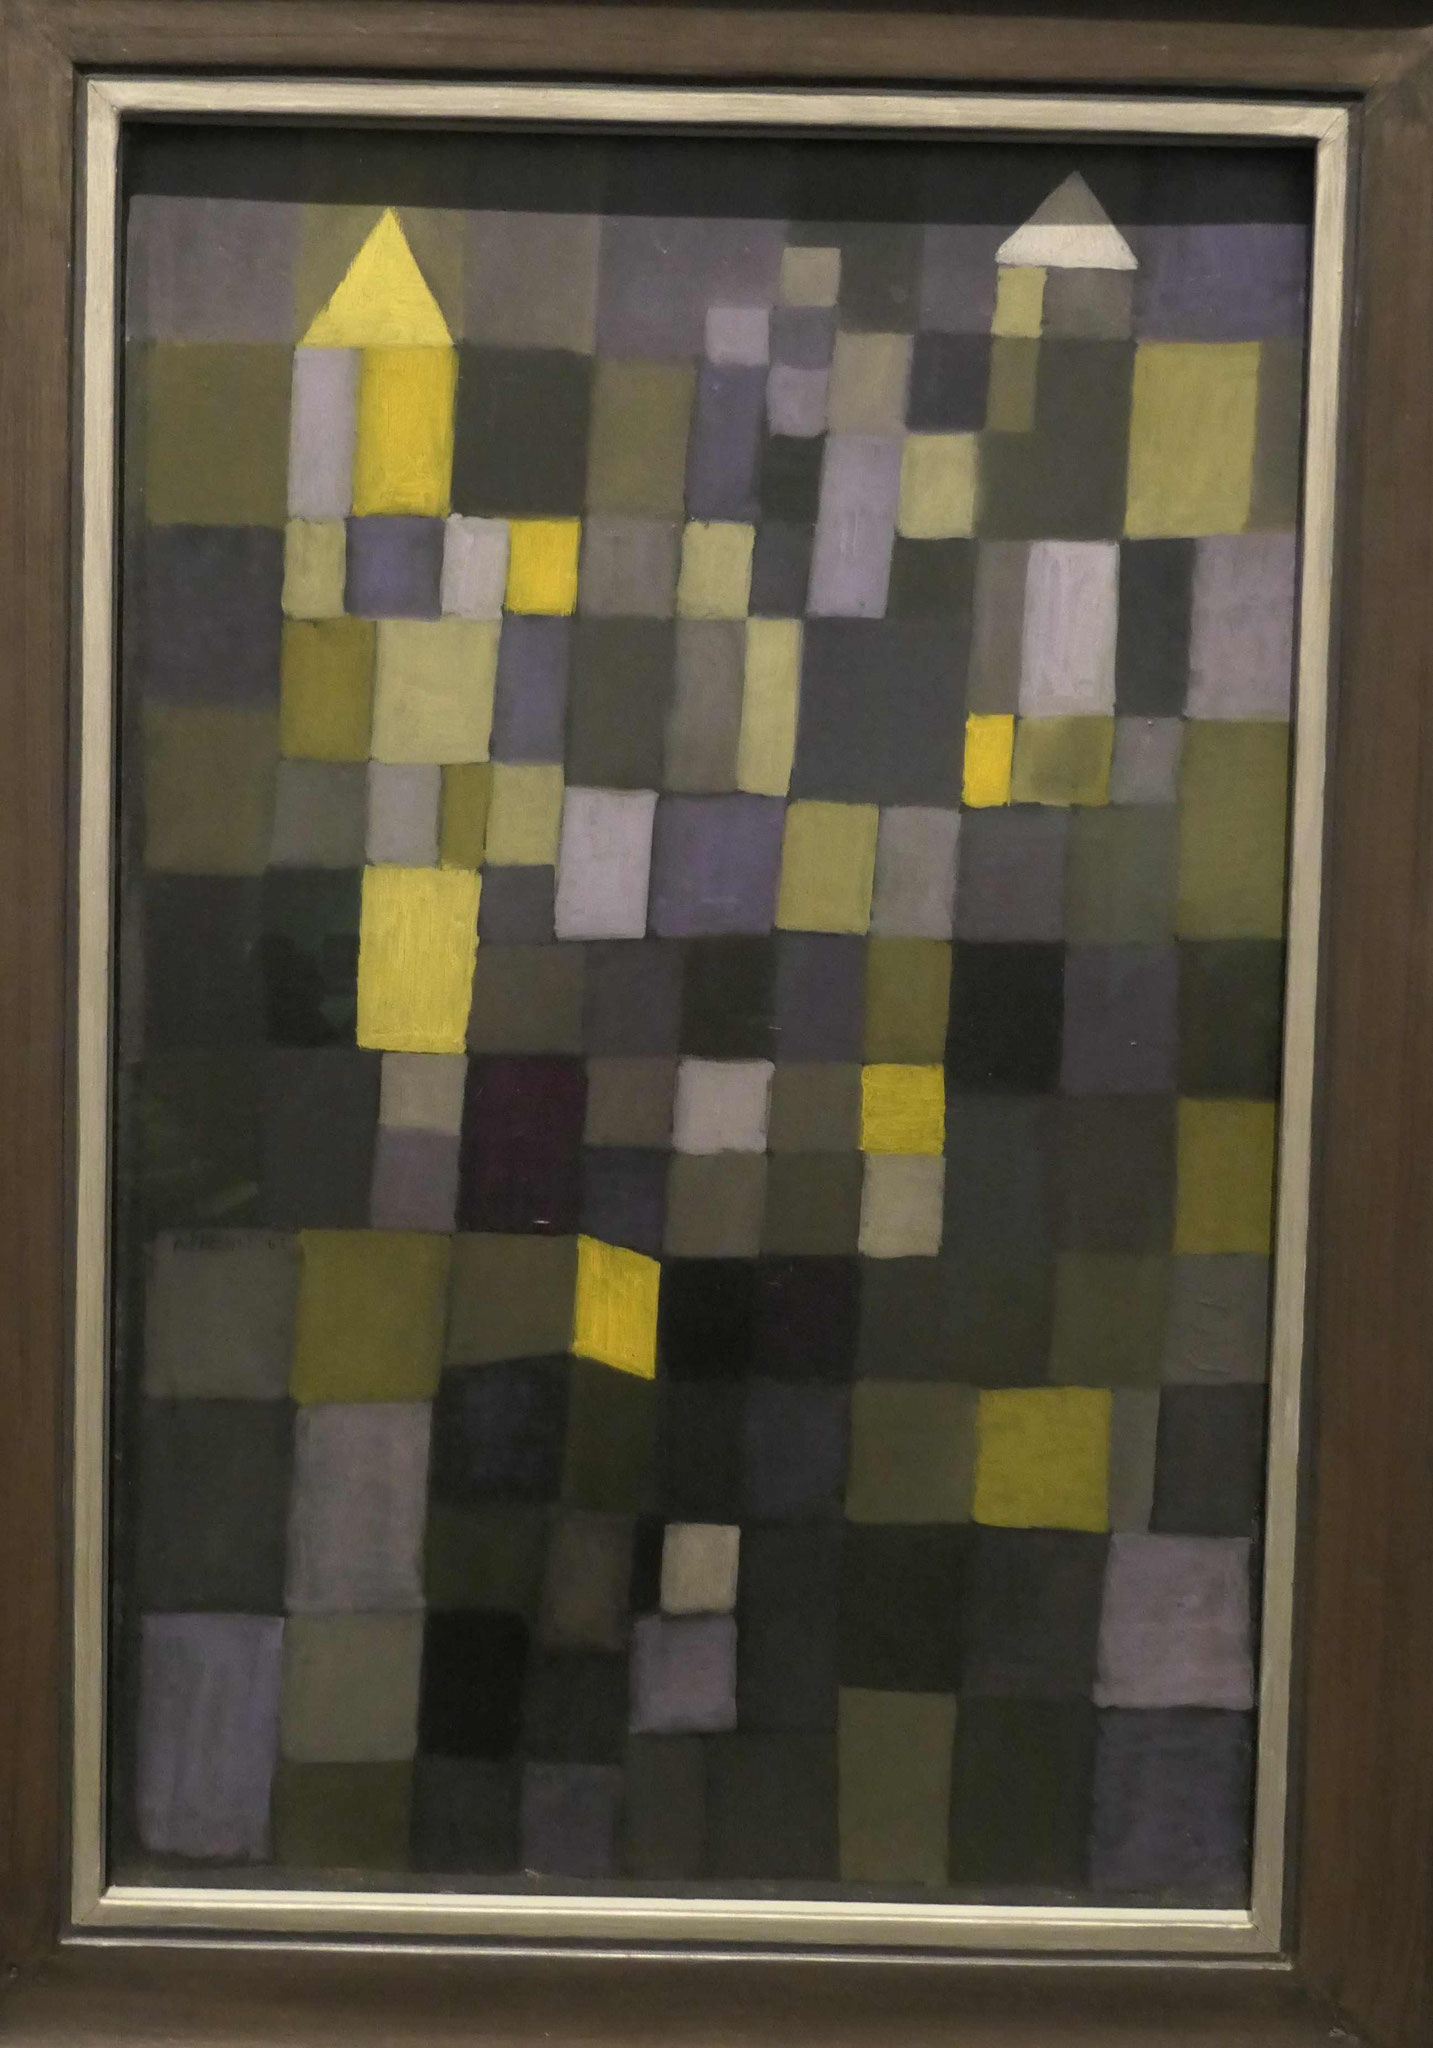 Paul Klee, Architektur, 1924, Nationalgalerie Berlin